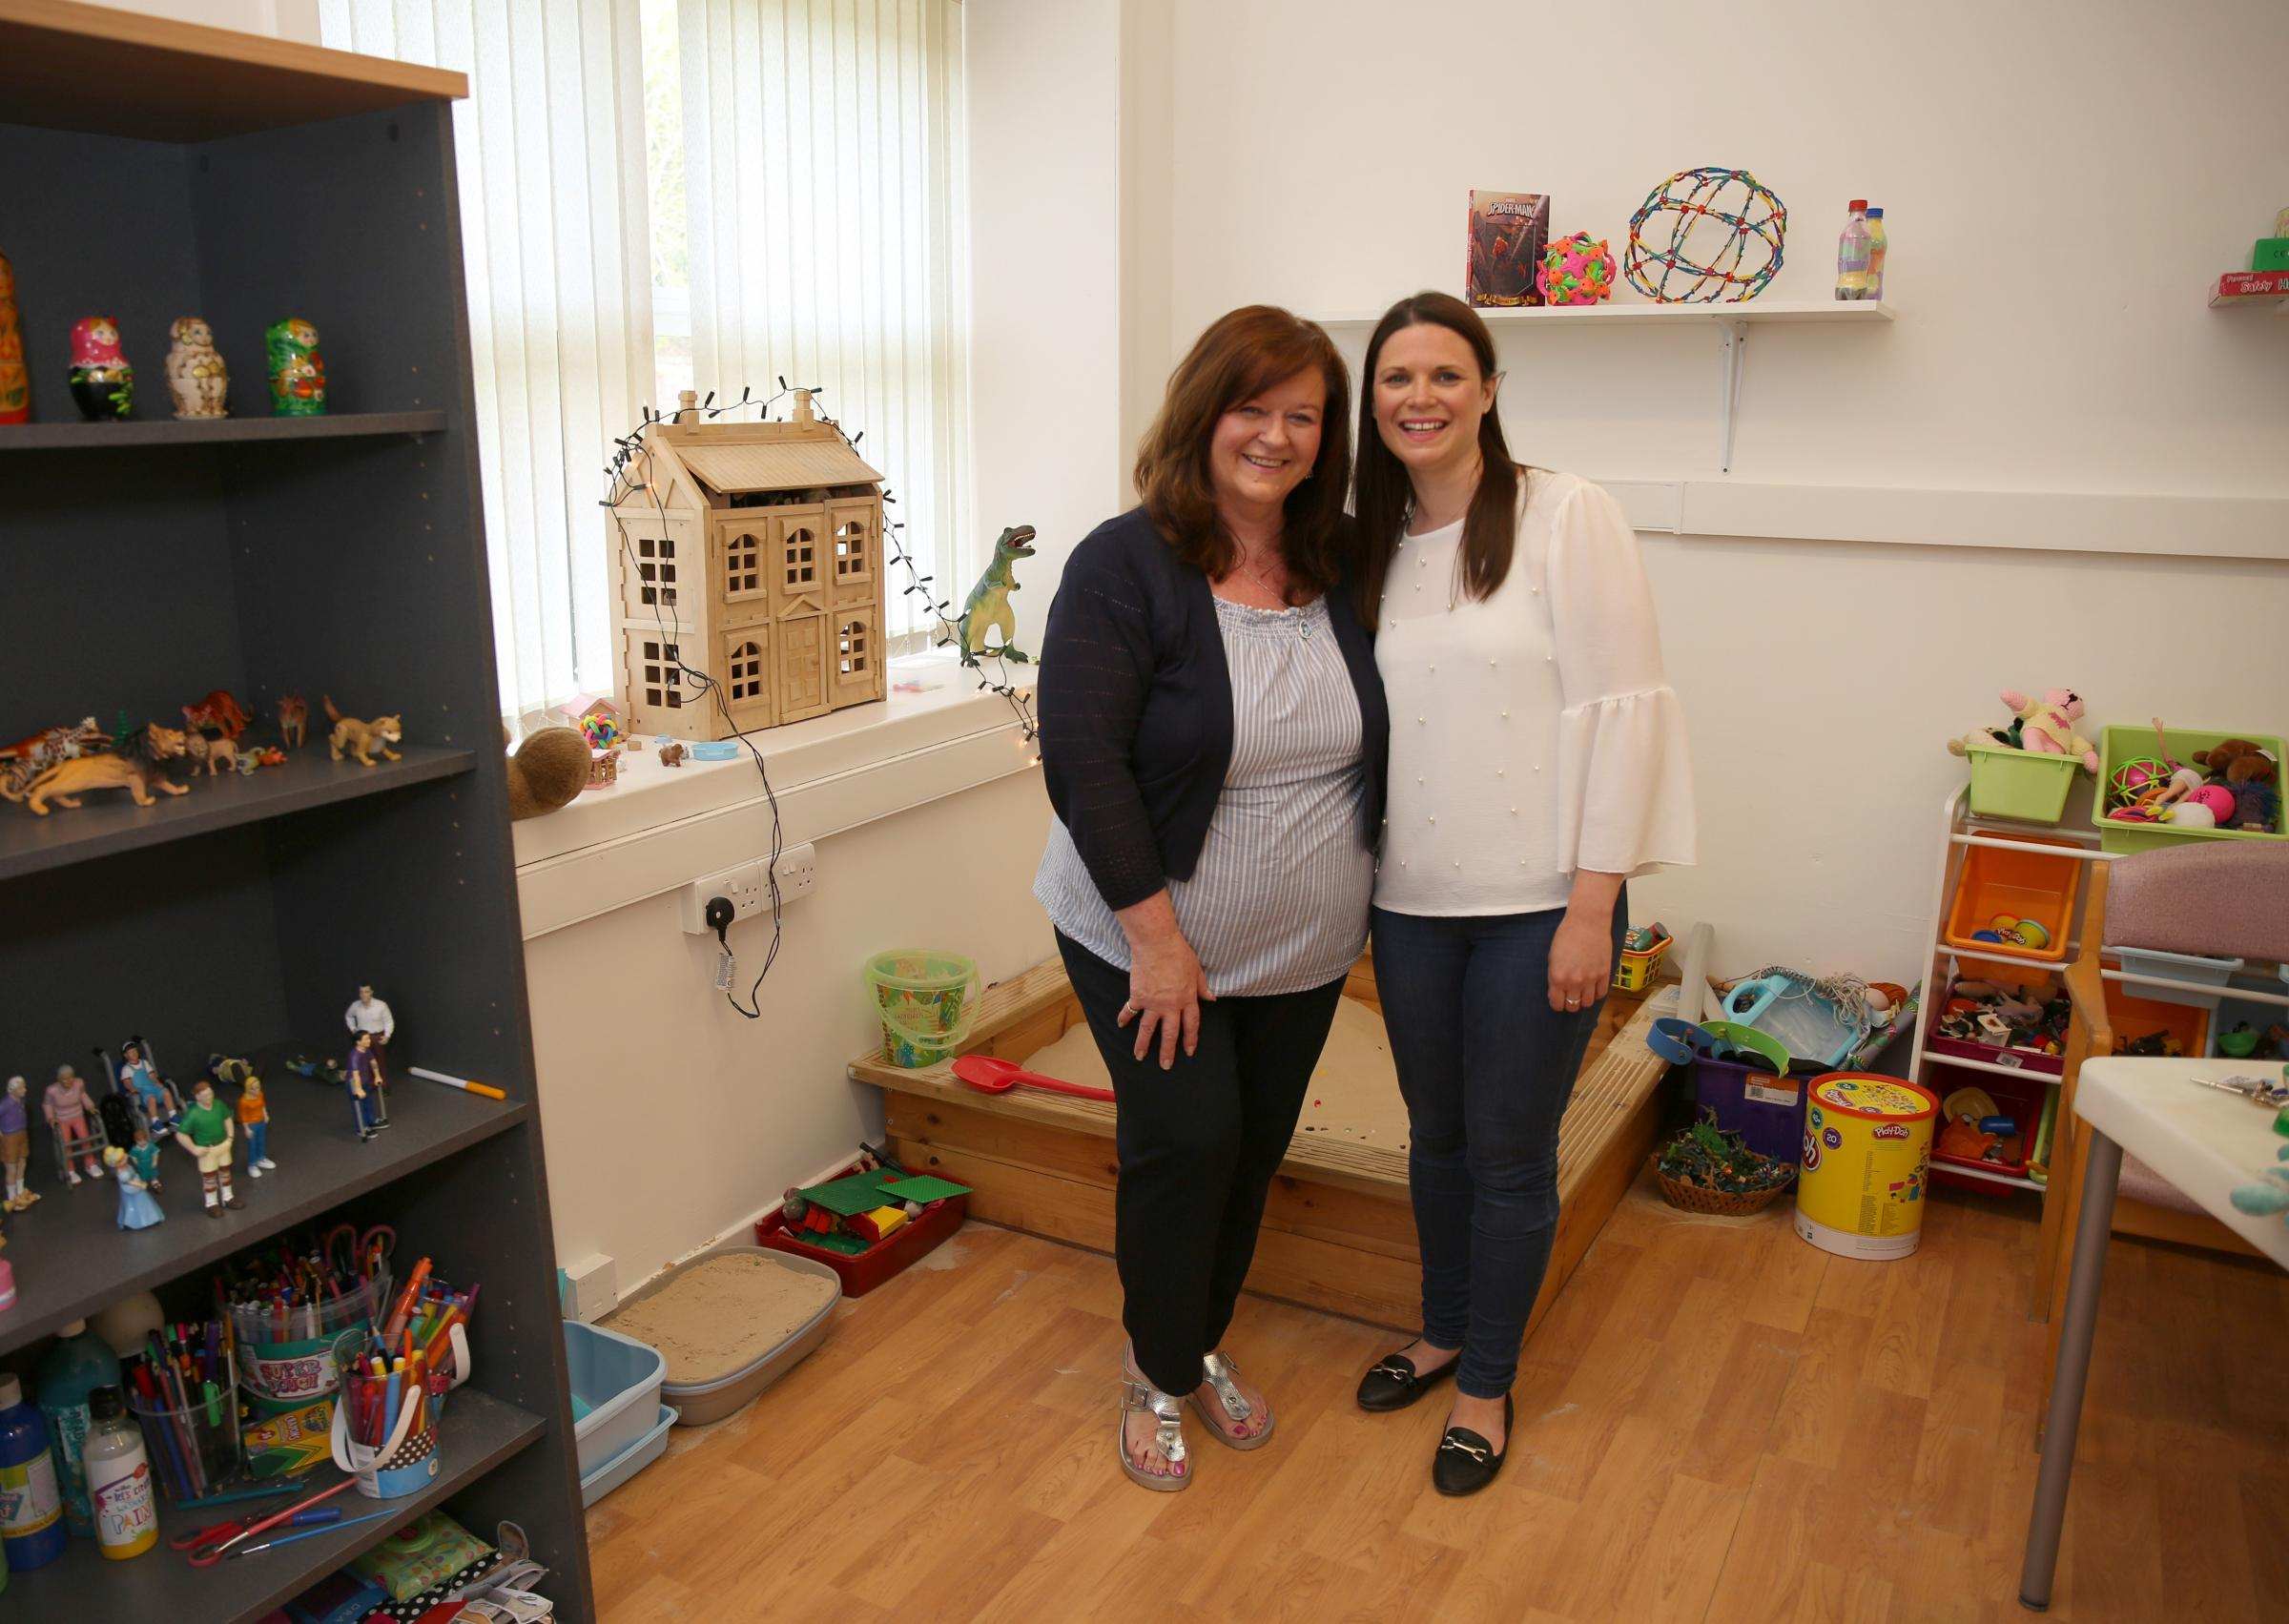 Sandra Boyle, left, who is the director of child and family therapy services at the charity, with Holly Stevenson, who is on placement with the charity.